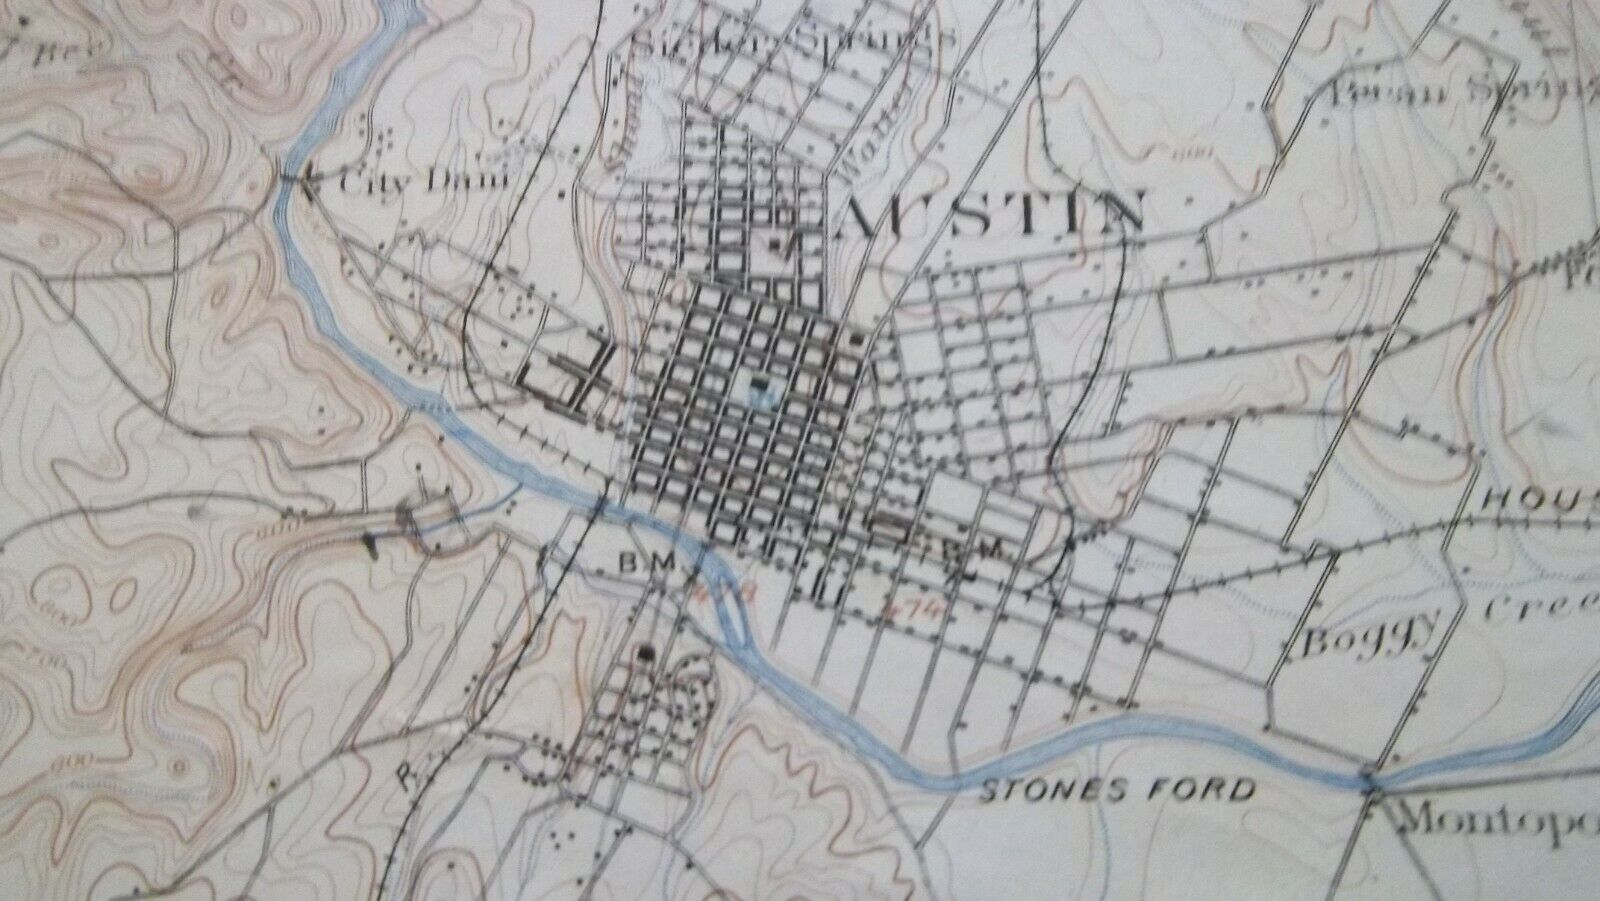 1901 Topo Map AUSTIN TEXAS Surveyed in 189596  Railroads  Buildings  Antique